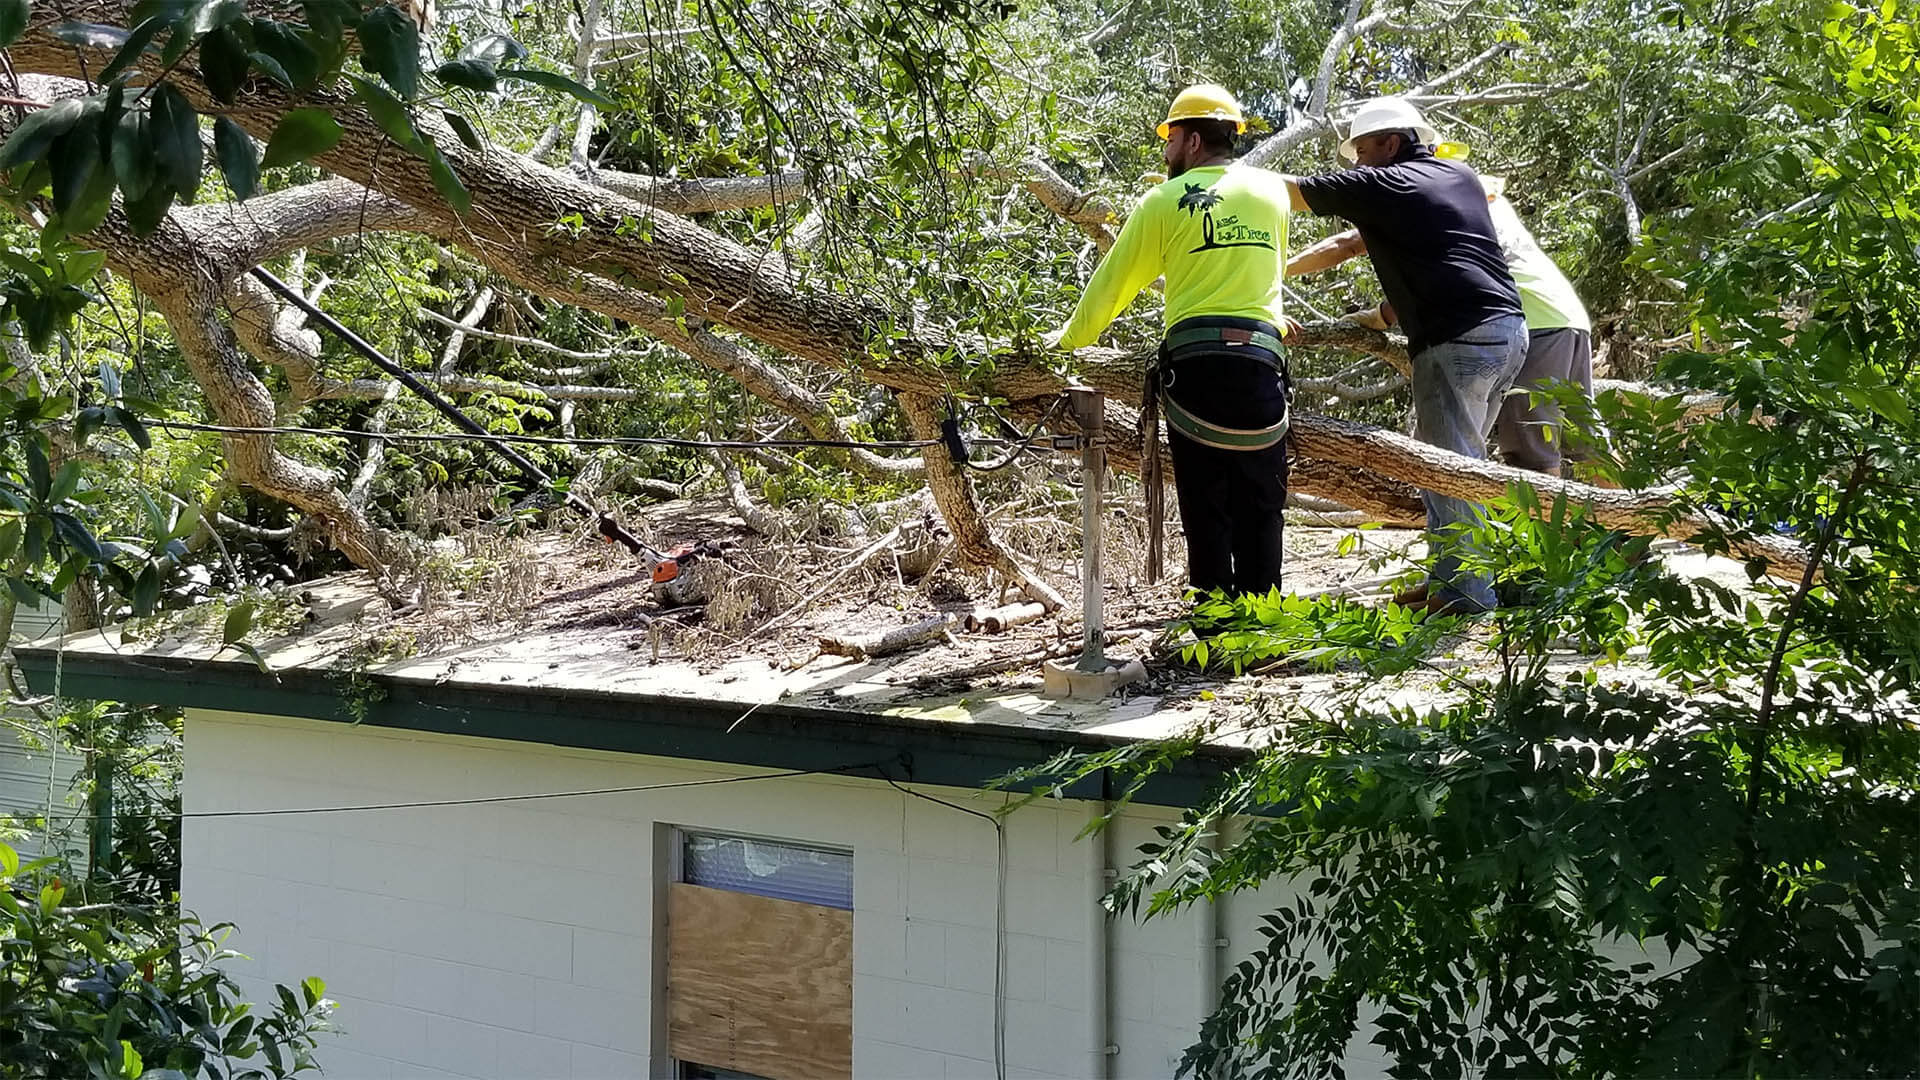 Storm Damage-National City CA Tree Trimming and Stump Grinding Services-We Offer Tree Trimming Services, Tree Removal, Tree Pruning, Tree Cutting, Residential and Commercial Tree Trimming Services, Storm Damage, Emergency Tree Removal, Land Clearing, Tree Companies, Tree Care Service, Stump Grinding, and we're the Best Tree Trimming Company Near You Guaranteed!